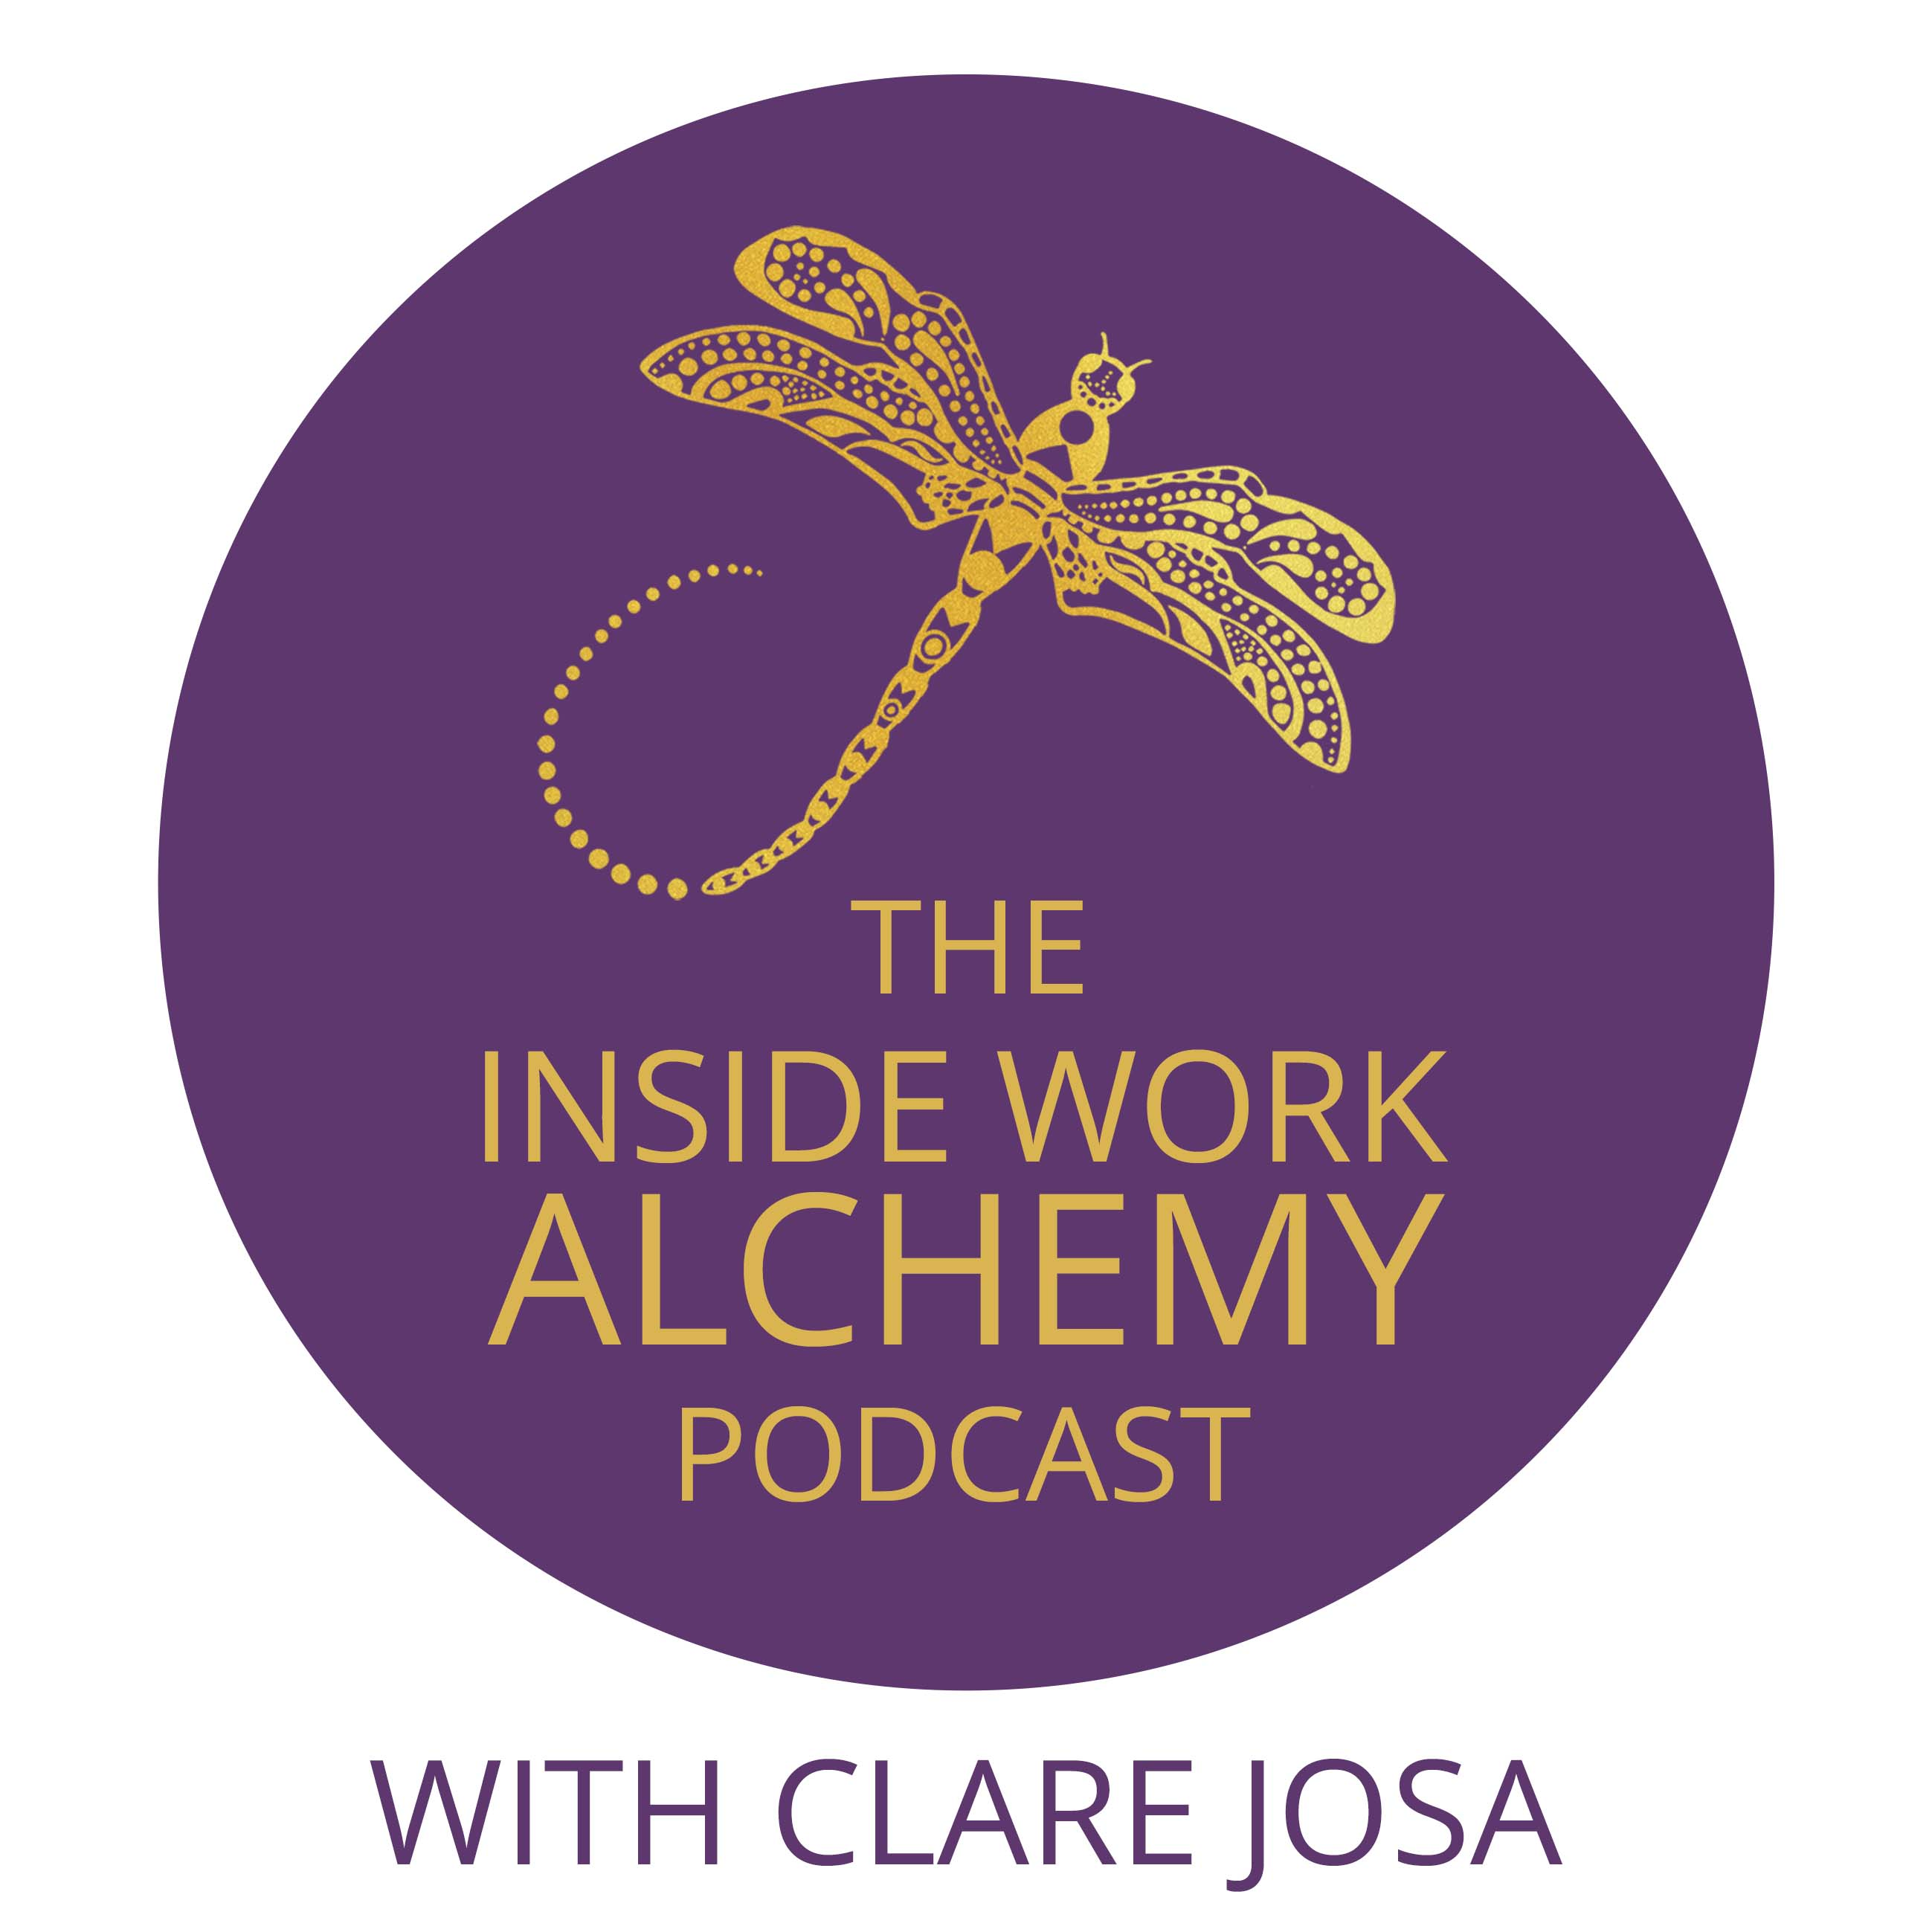 Inside Work Alchemy Podcast